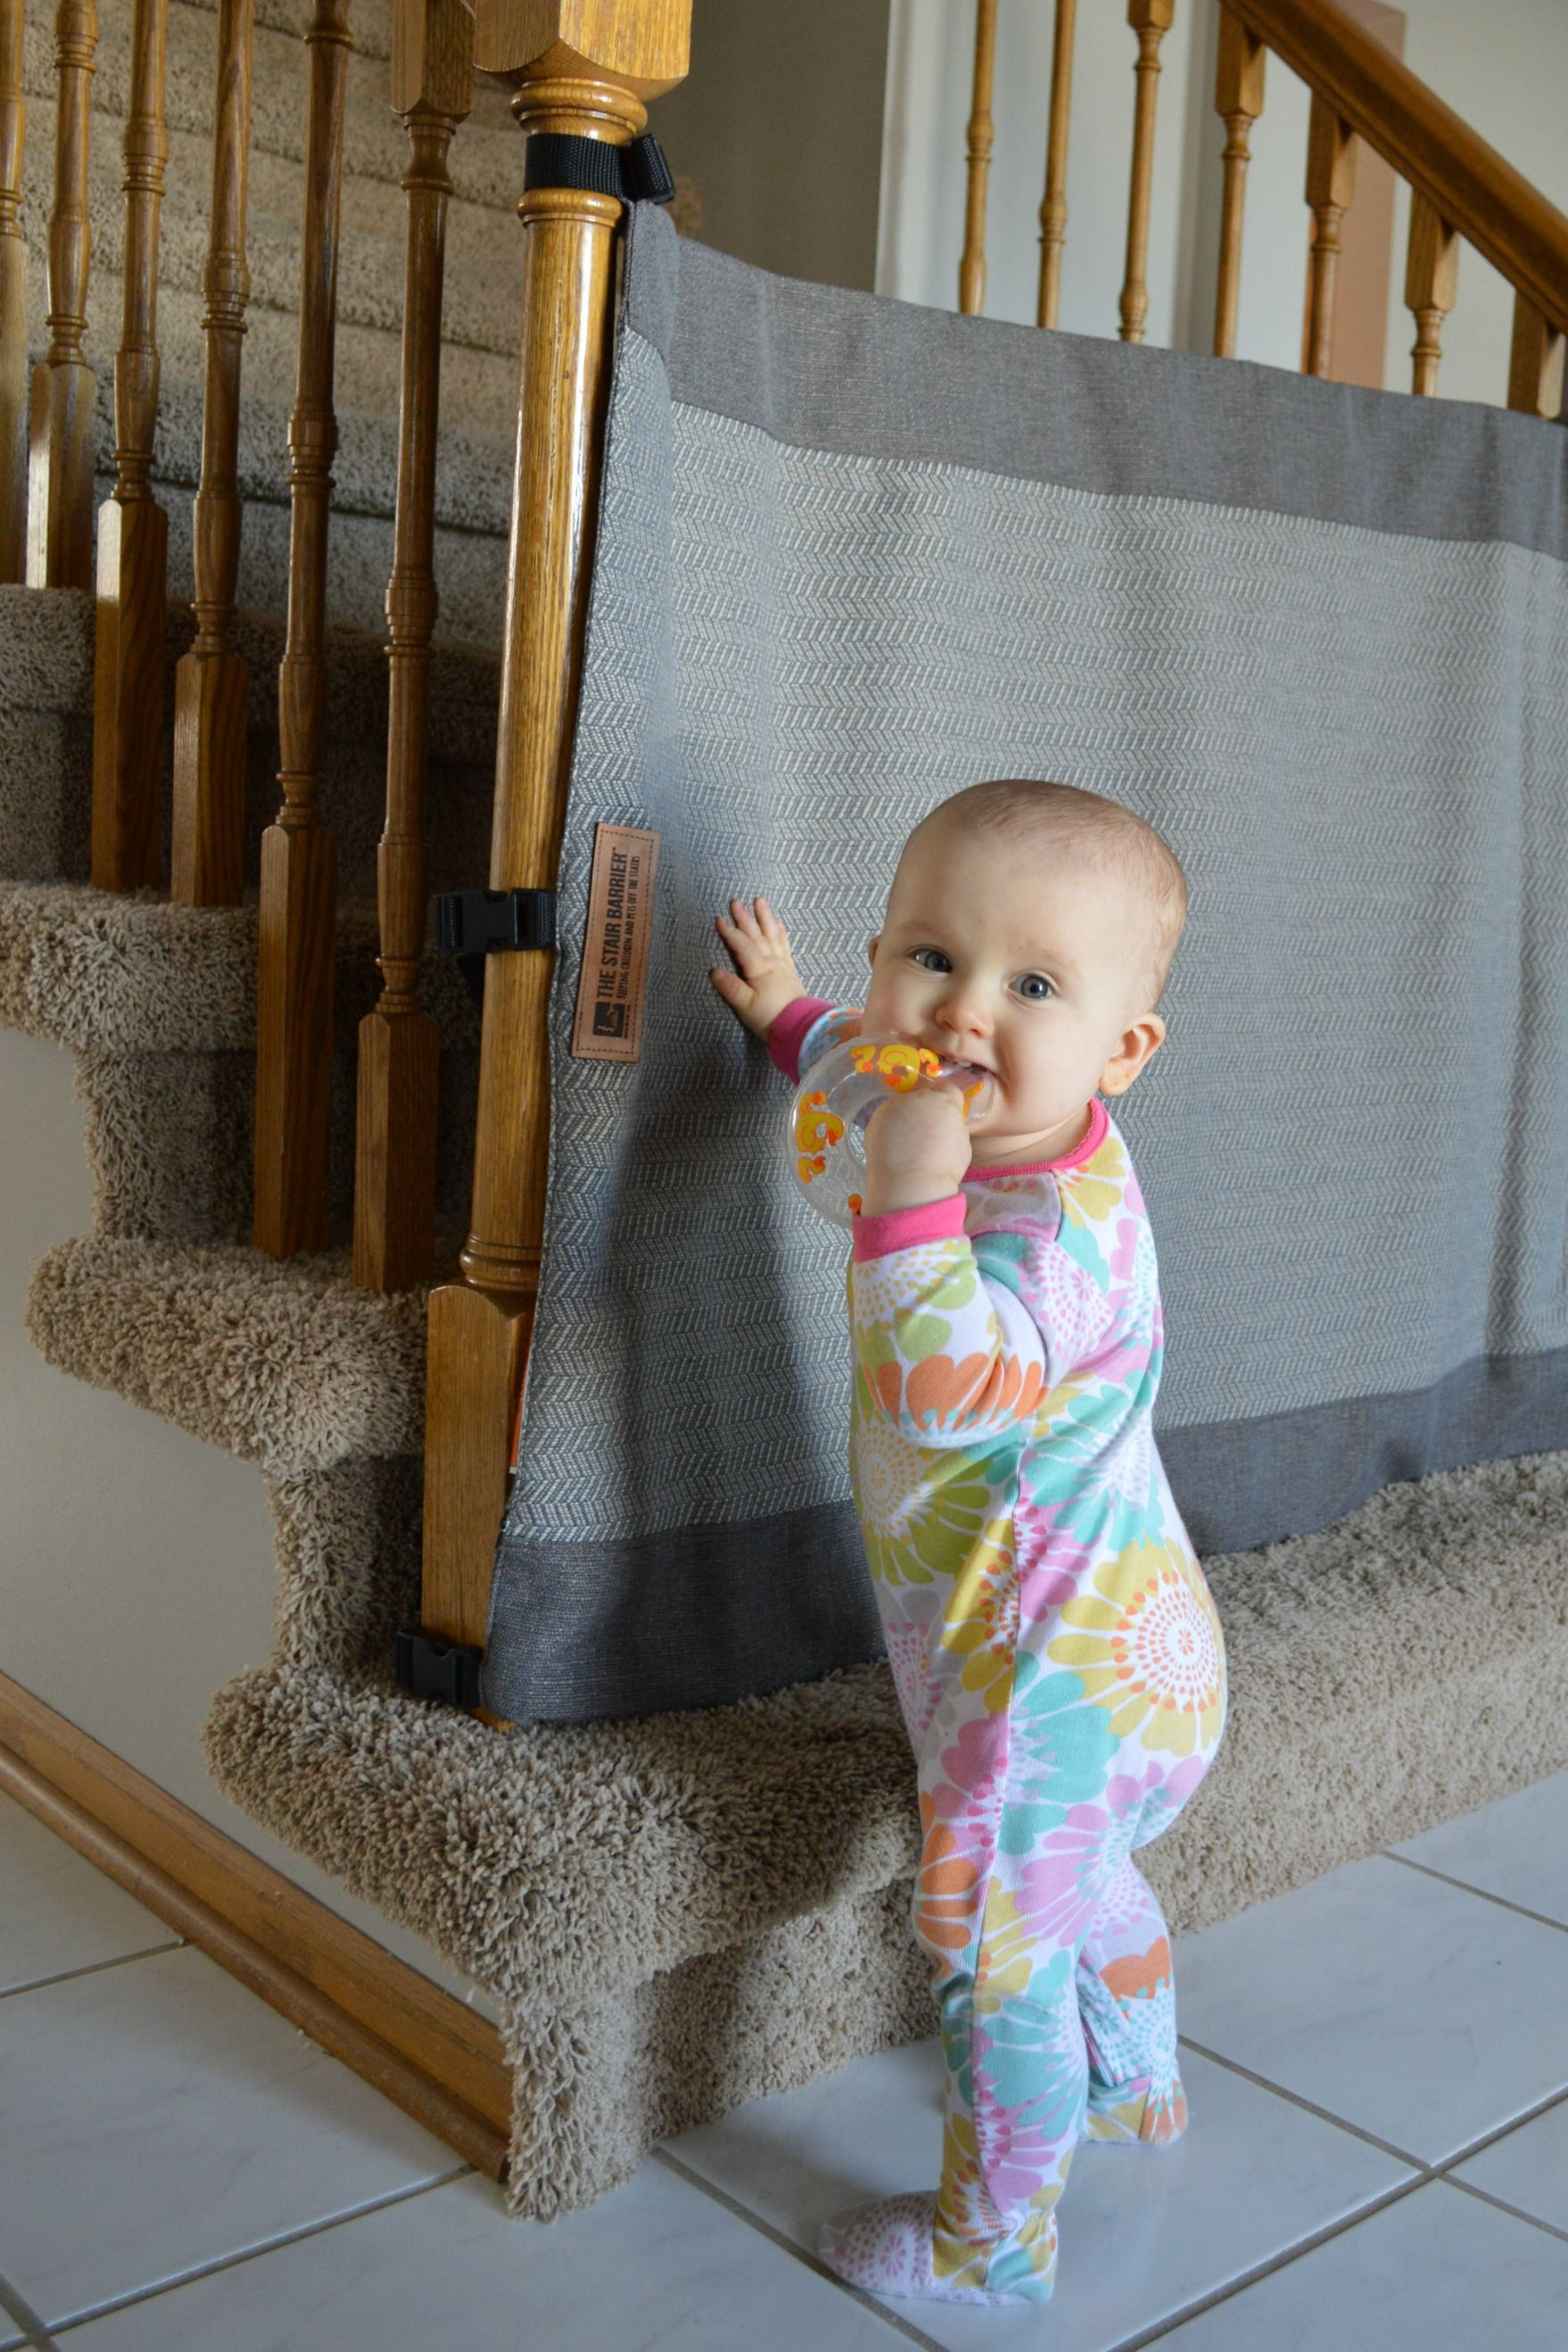 A stylish new way for baby proofing stairs Baby proofing